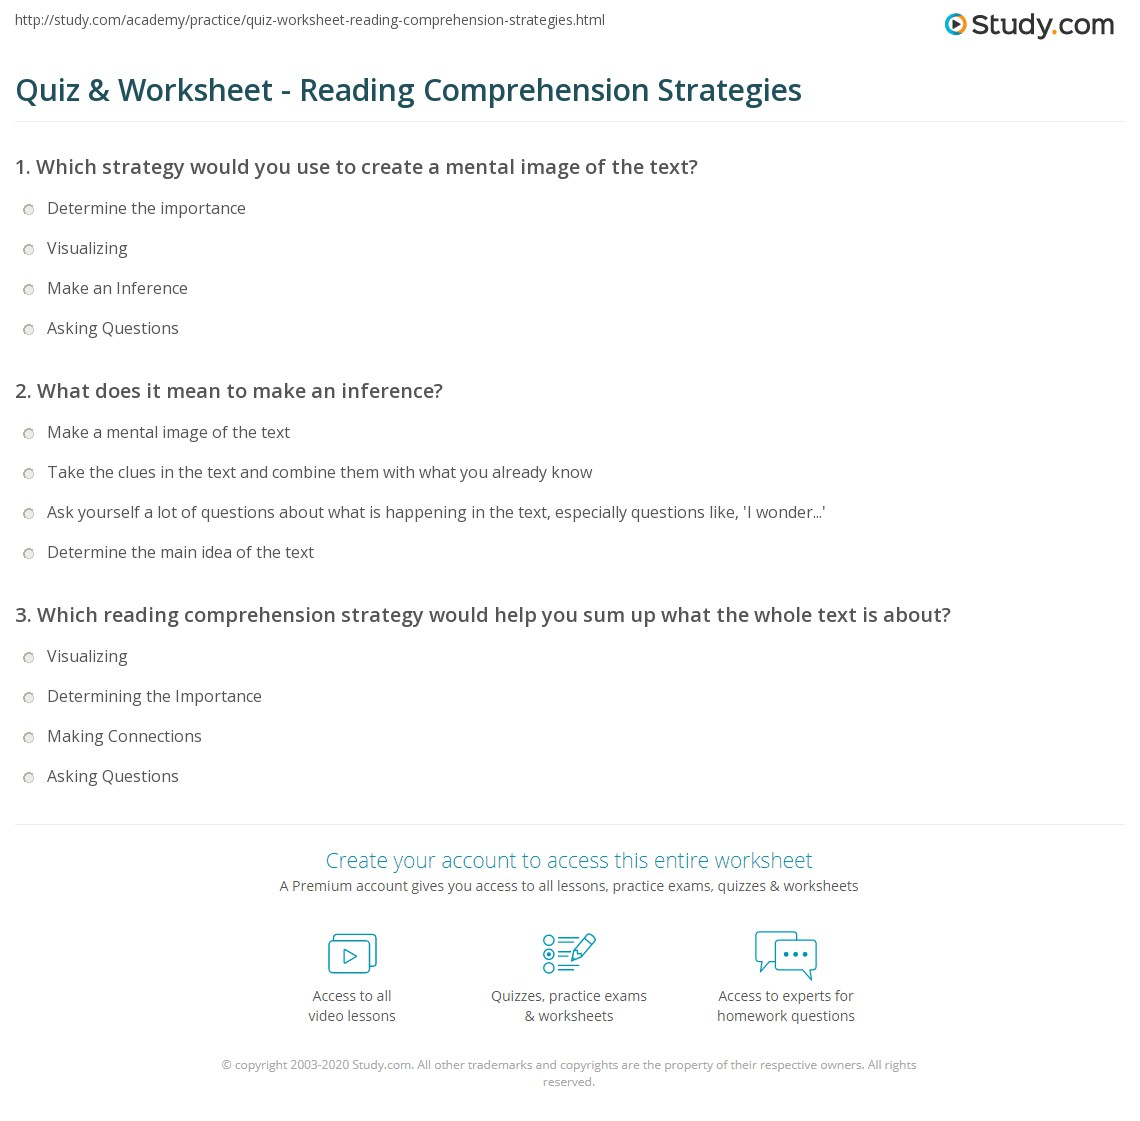 Worksheets Reading Comprehension Strategies Worksheets quiz worksheet reading comprehension strategies study com print for worksheet